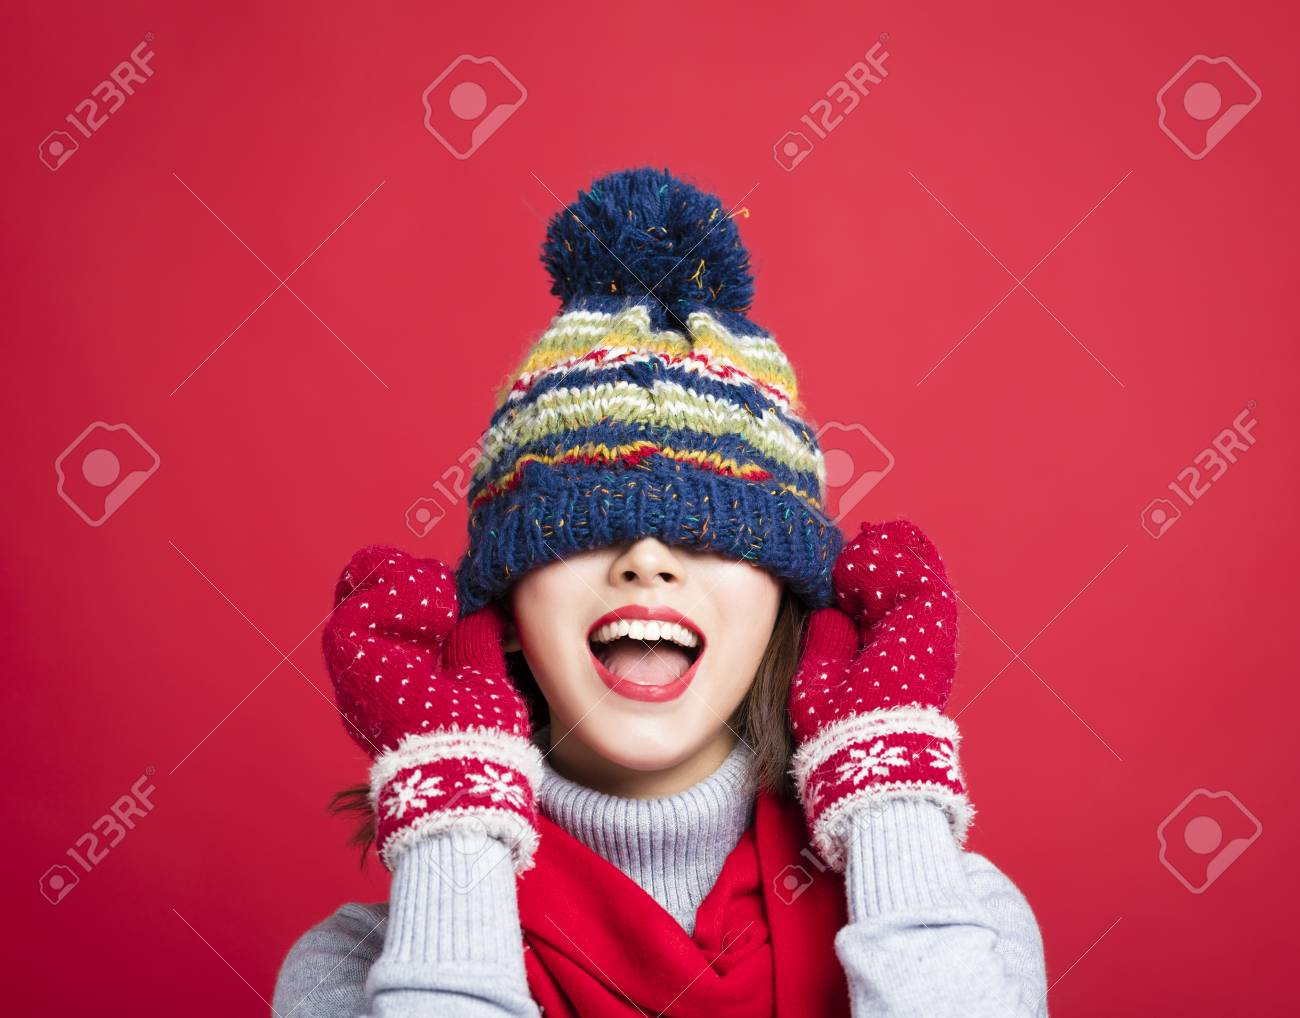 Happy Young Beautiful Woman in winter clothes - 88279213